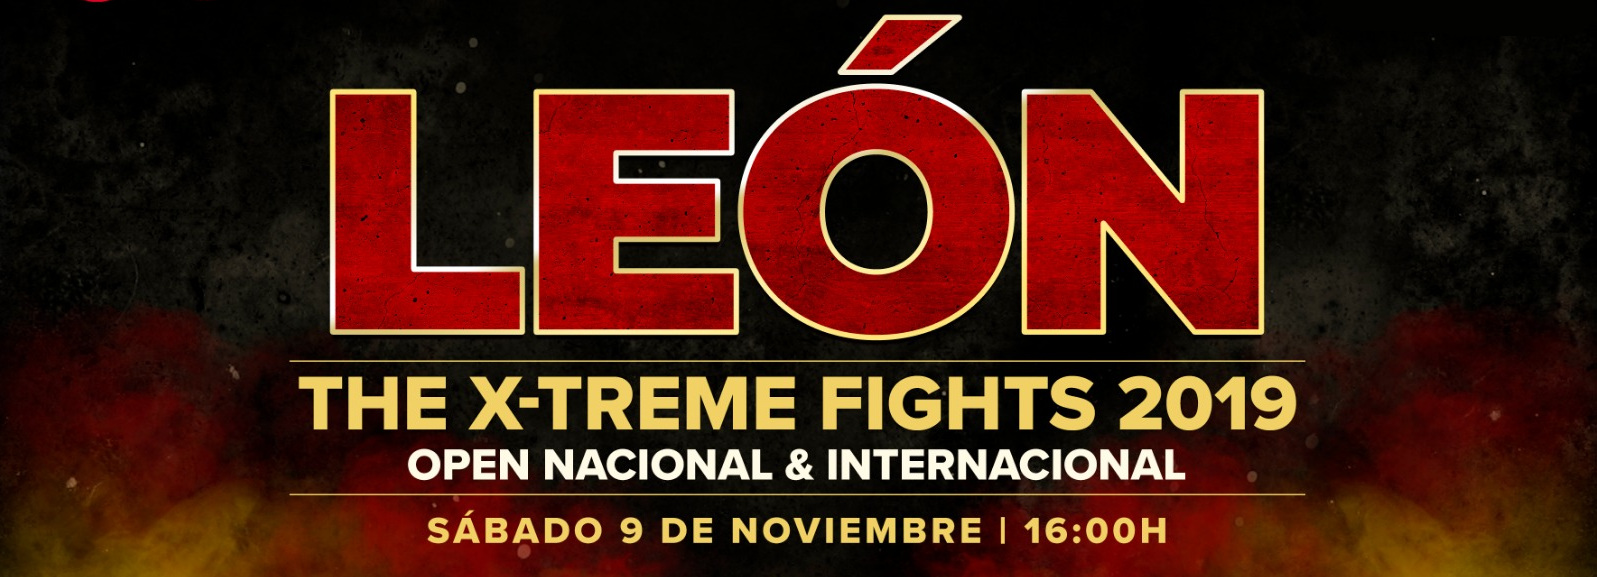 León x-treme fights 2019 - Banner